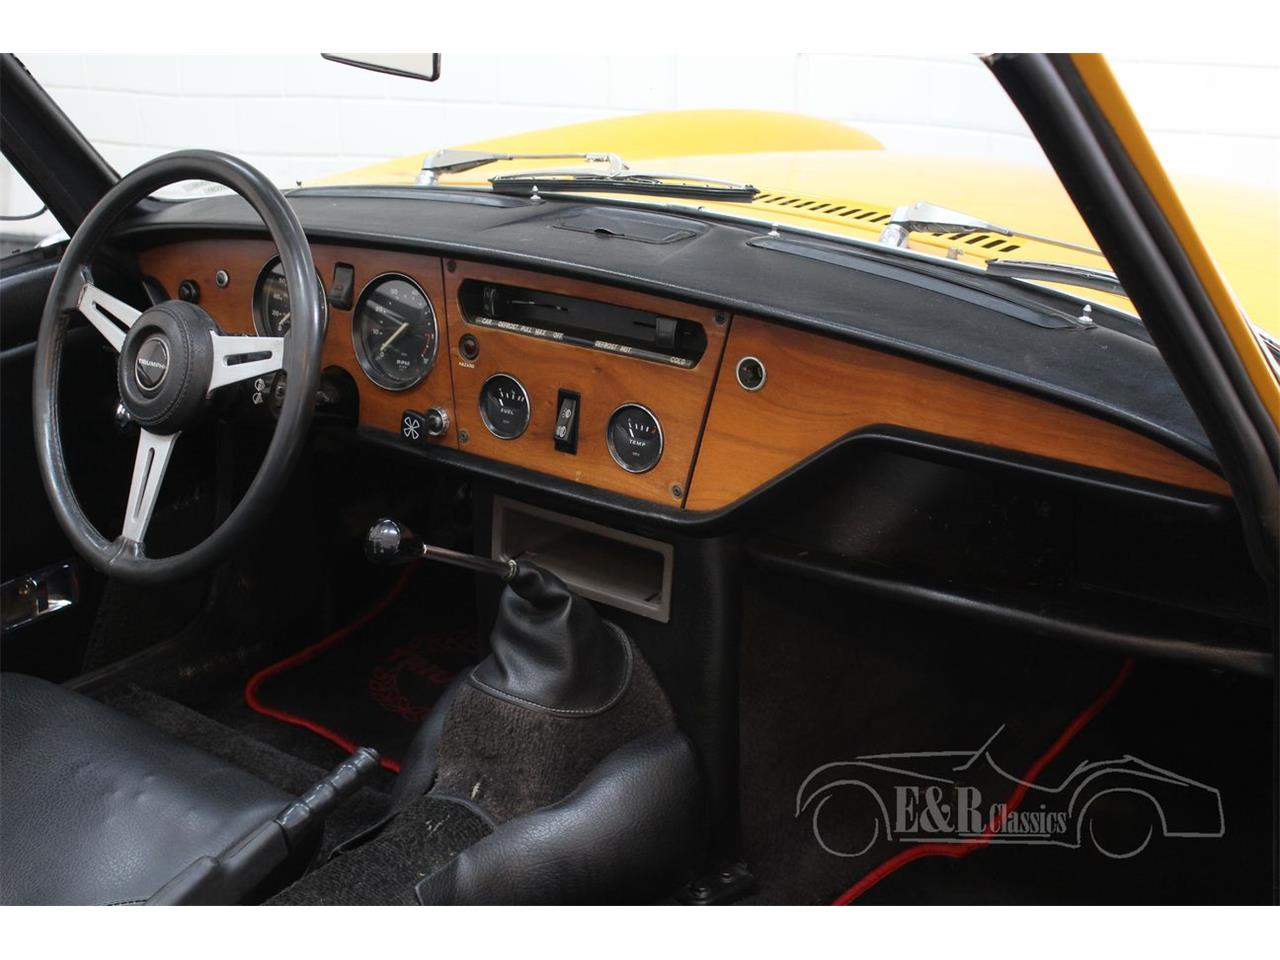 Large Picture of '74 Triumph Spitfire located in Waalwijk Noord-Brabant - $16,850.00 - QIIQ